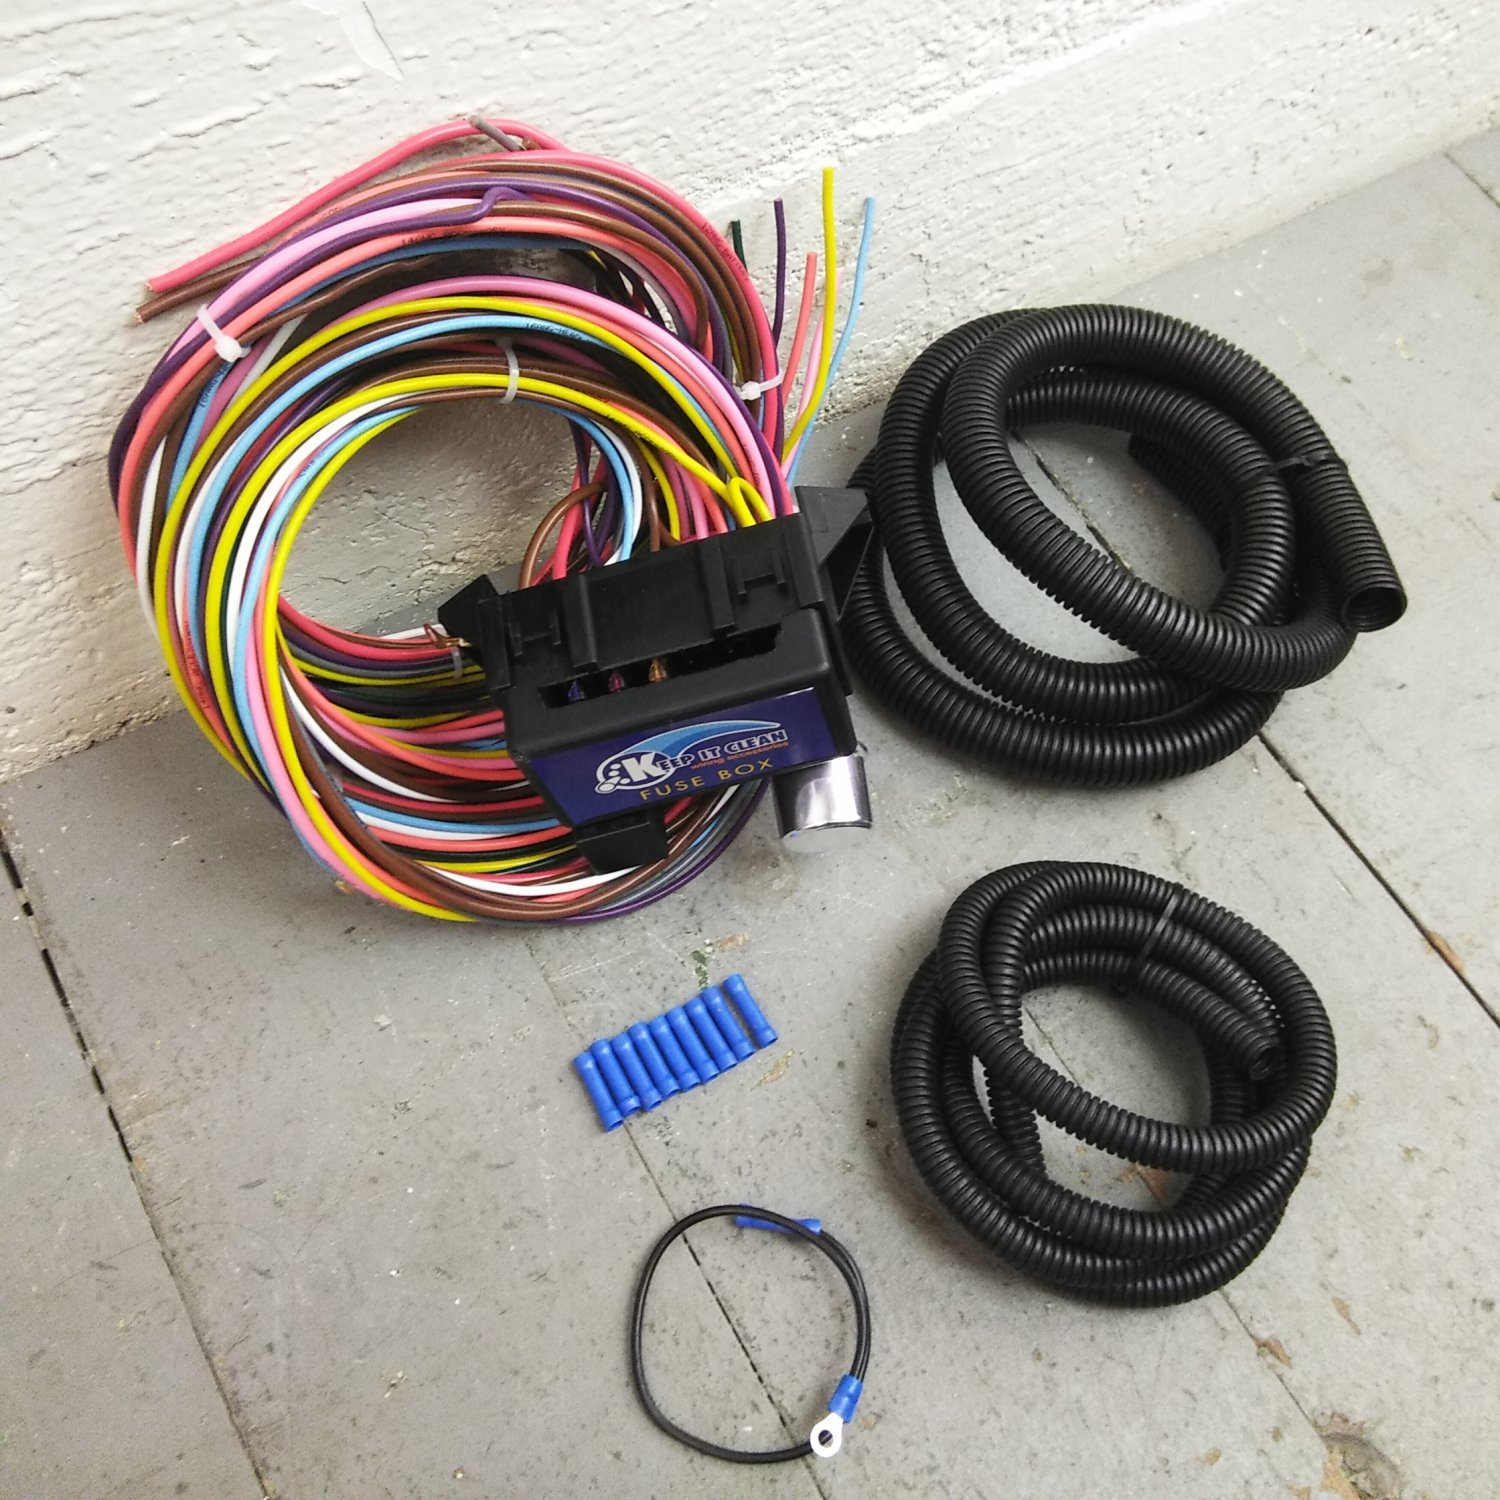 Vintage Buick Ultra Pro Wire Harness System 12 Fuse support new fit update.  Bar_Product_Description_C